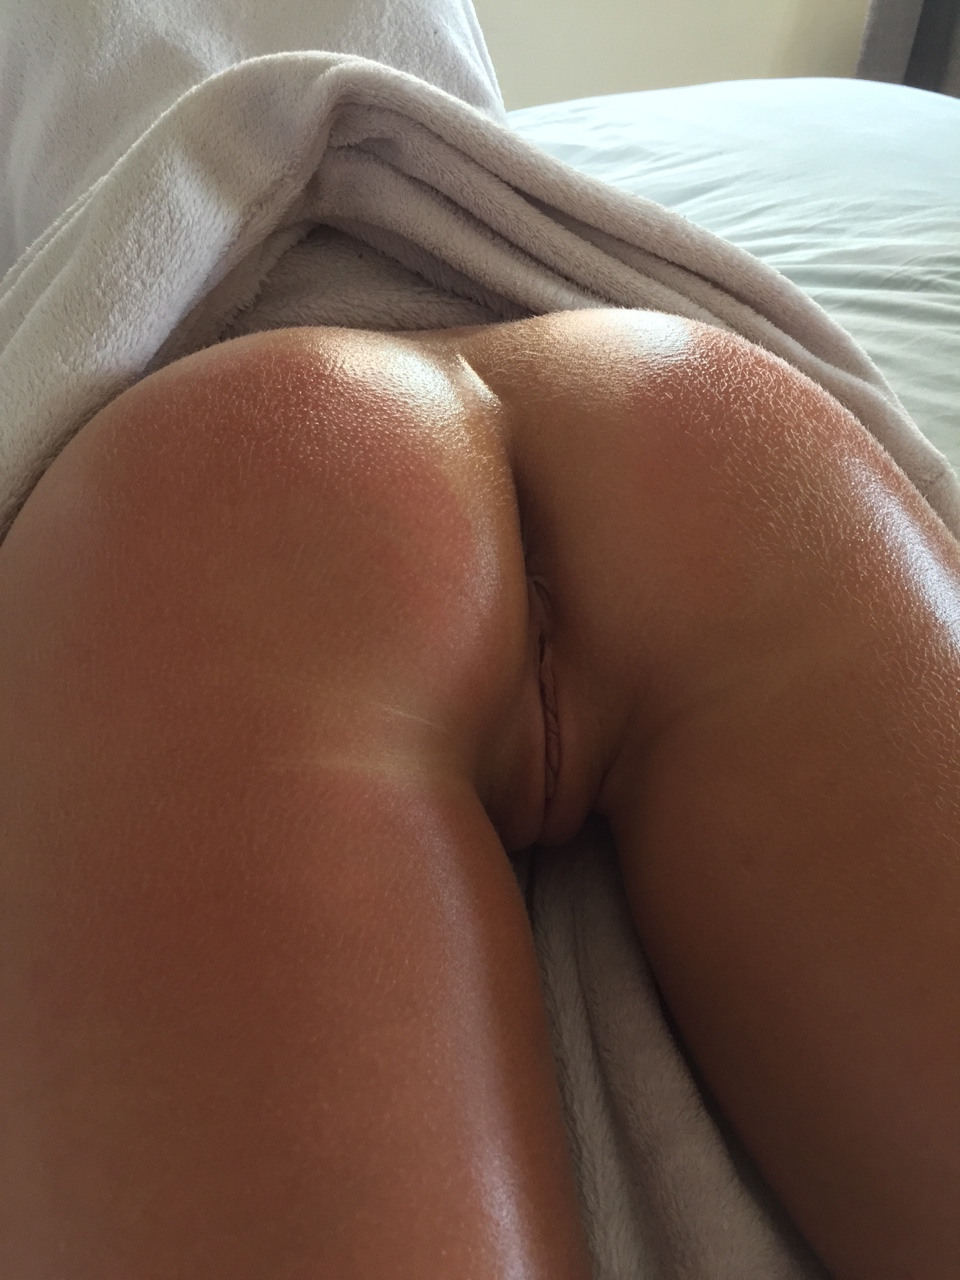 south african fat black girls get fuck at school free videos #frombelow  #skinny  #smallfirmtits  #armsup  #beautful  #erotic